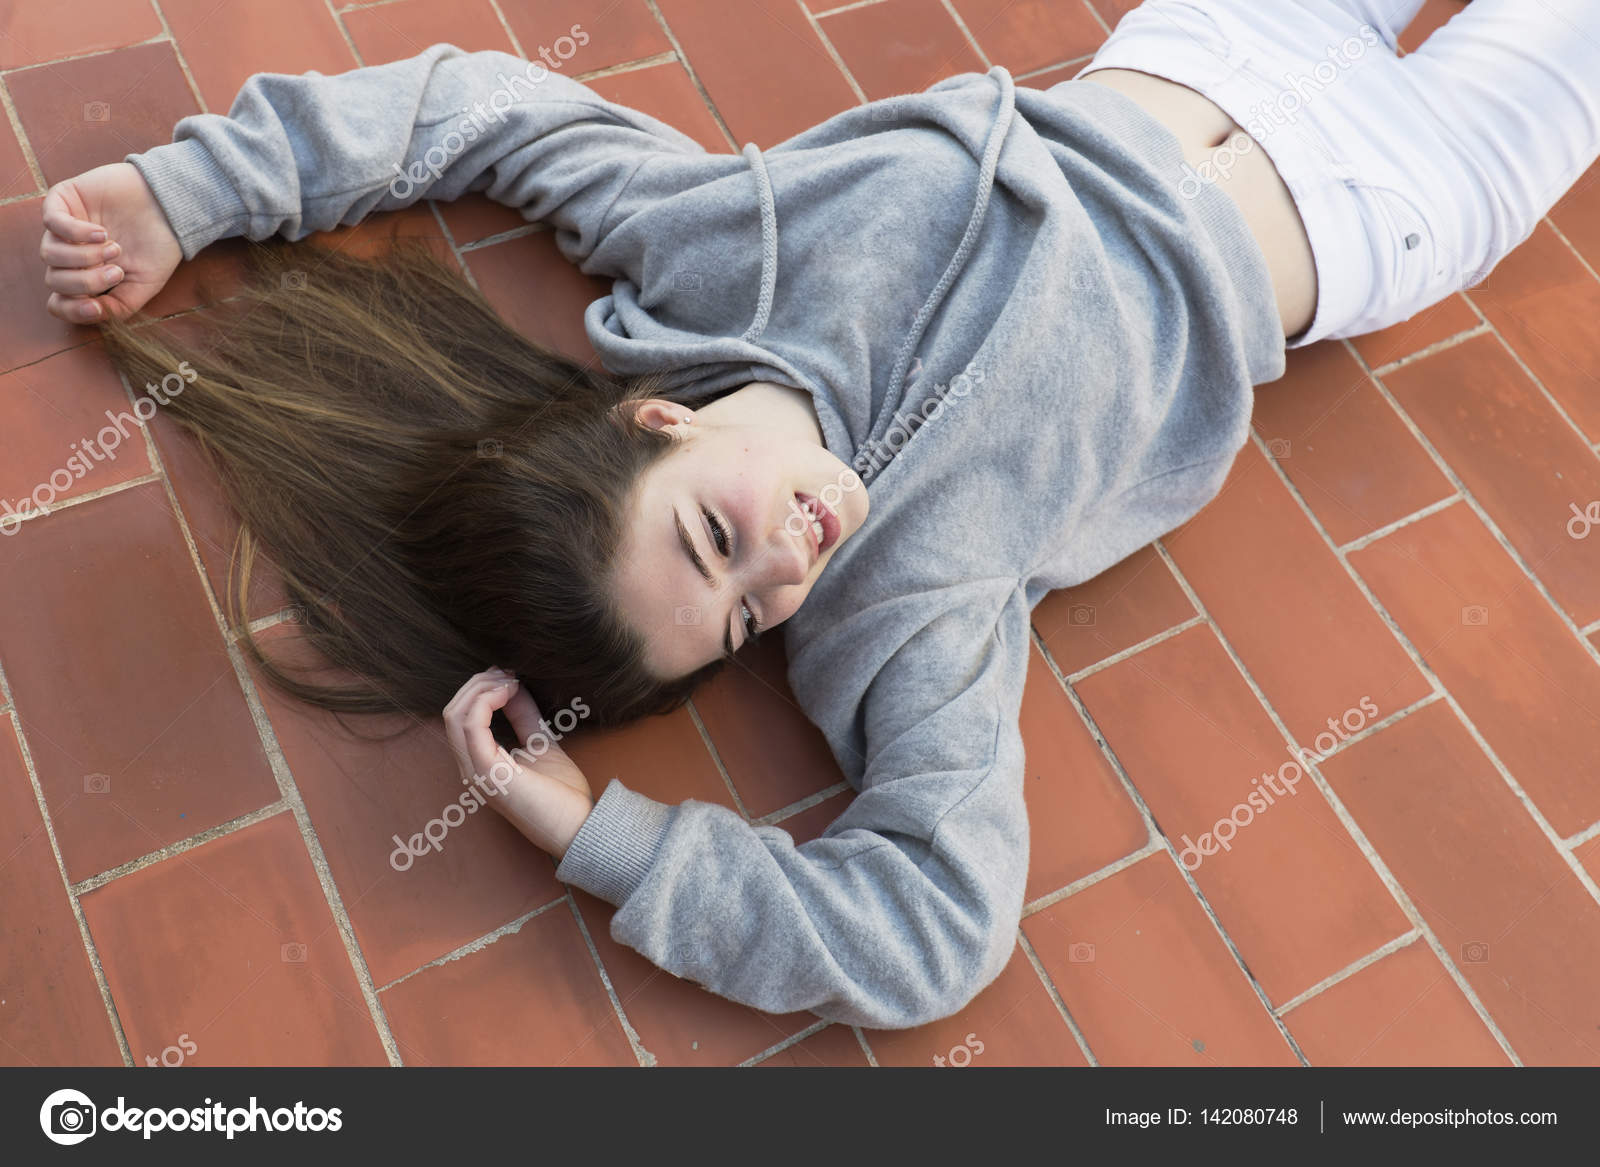 Young woman lying on laid floor